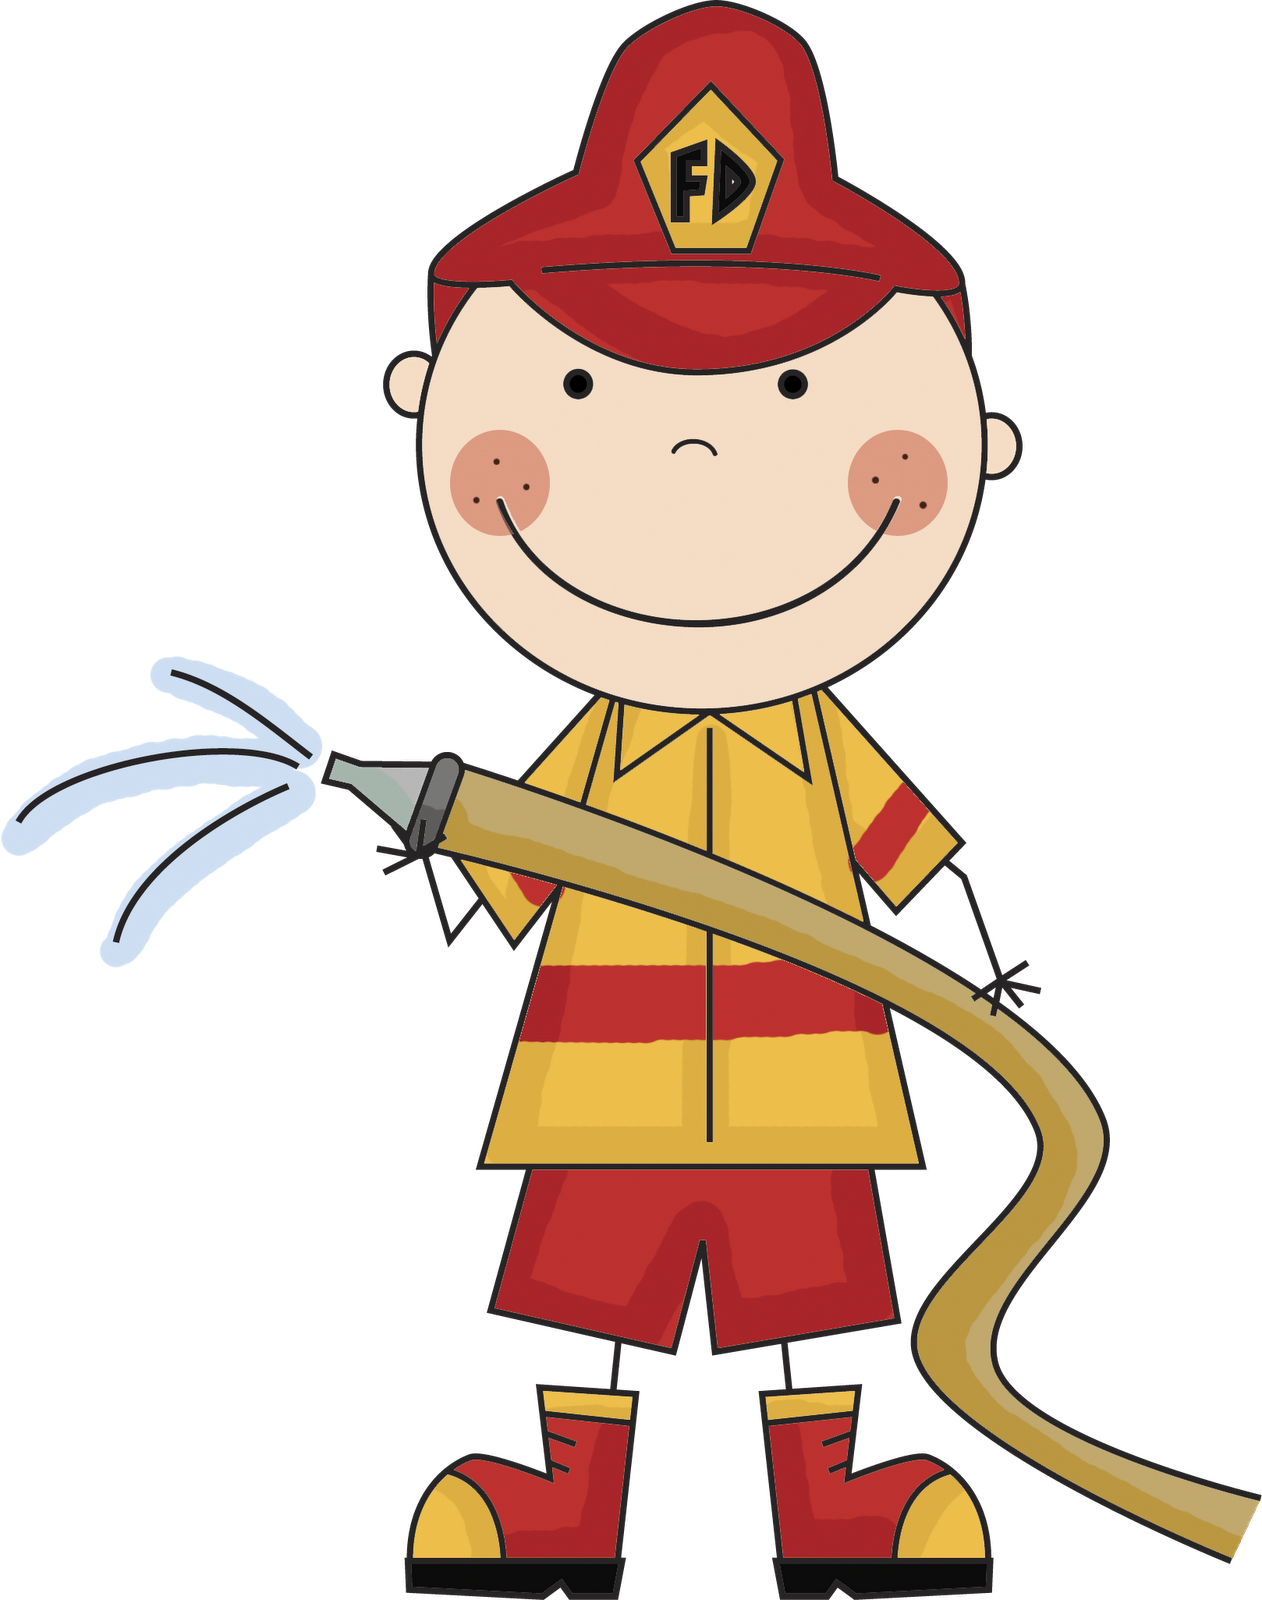 fire safety clipart-fire safety clipart-2